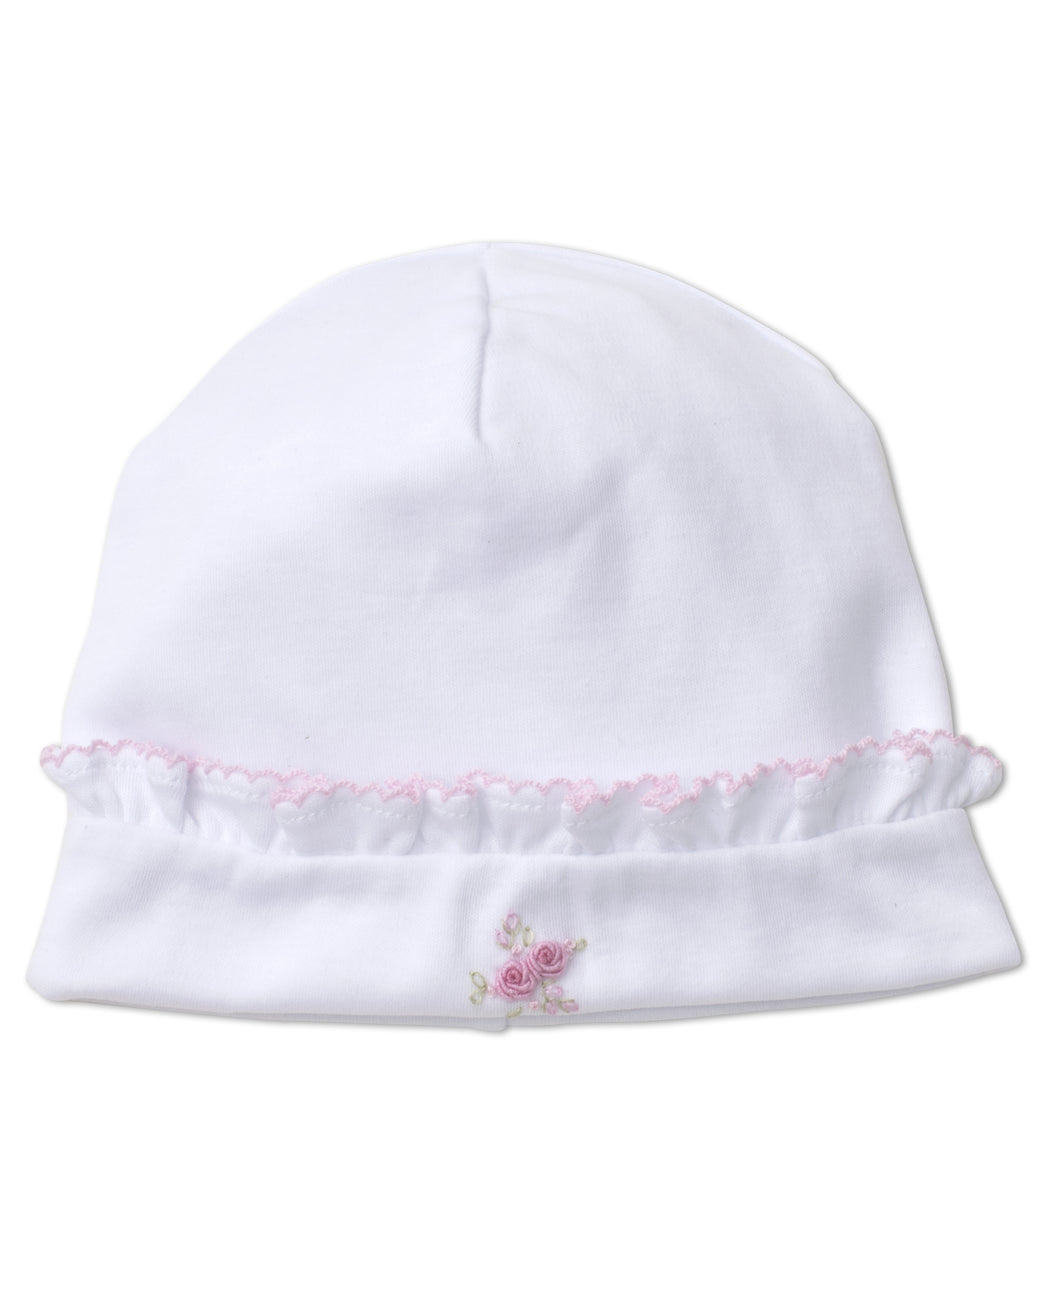 Winter Rosebuds Hat with Hand Emb - Pink